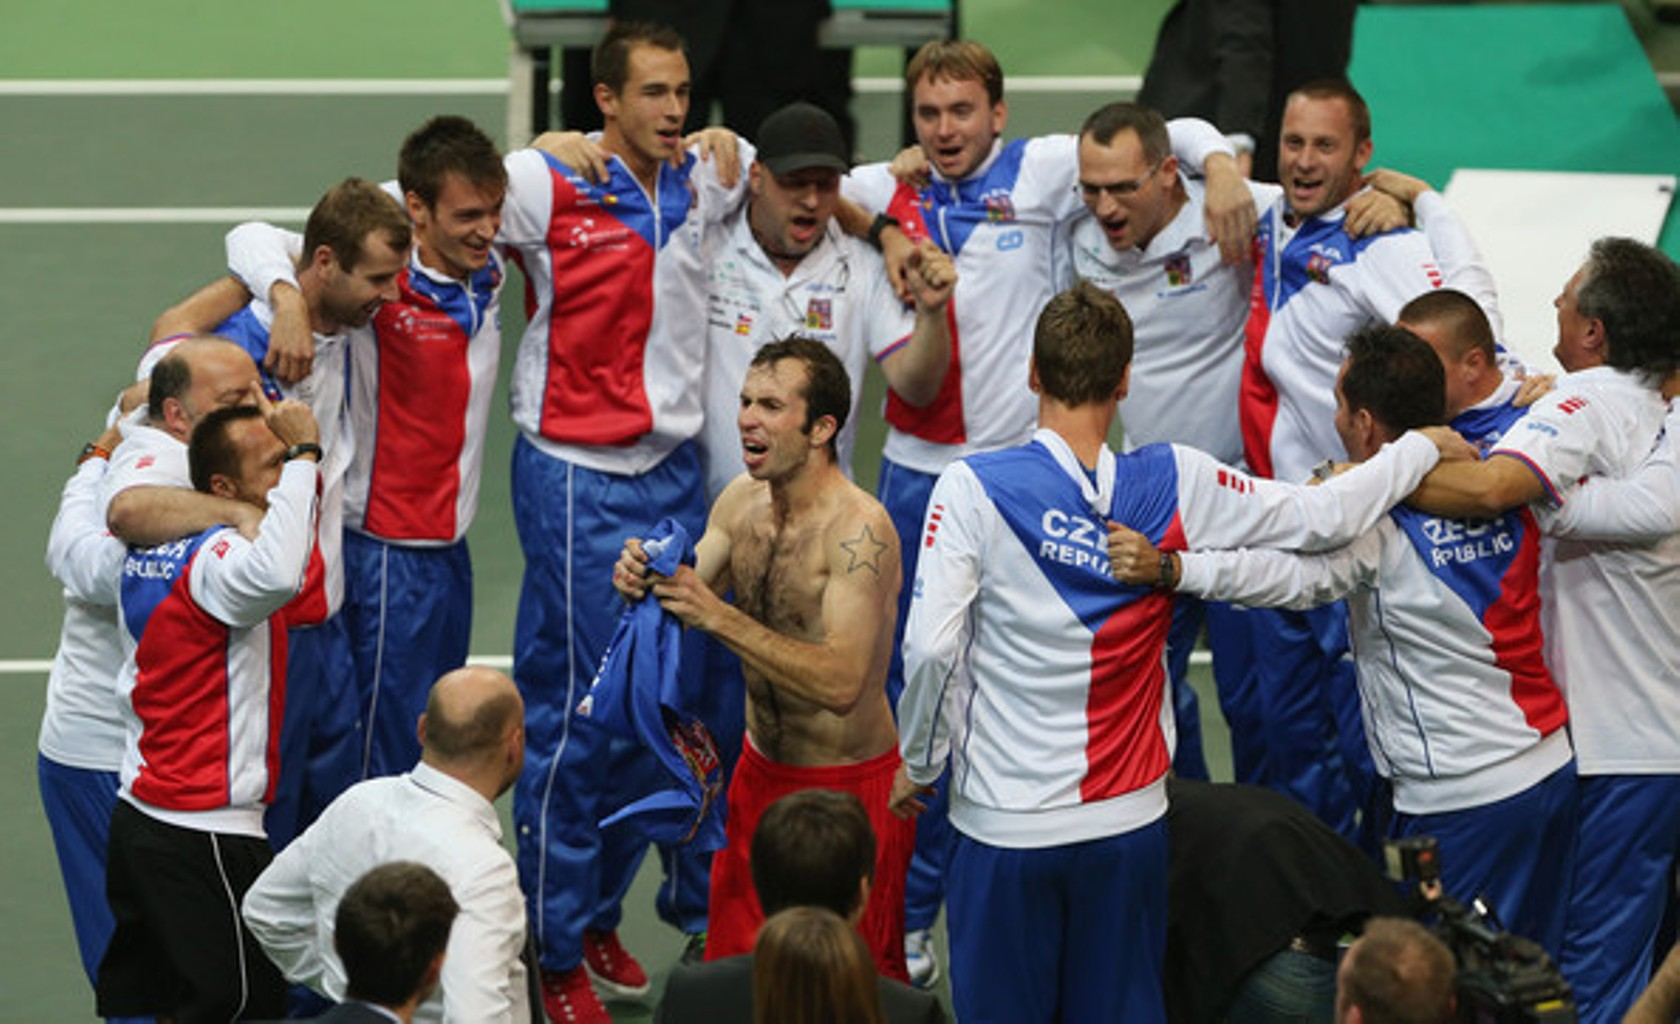 Naked star Radek Stepanek